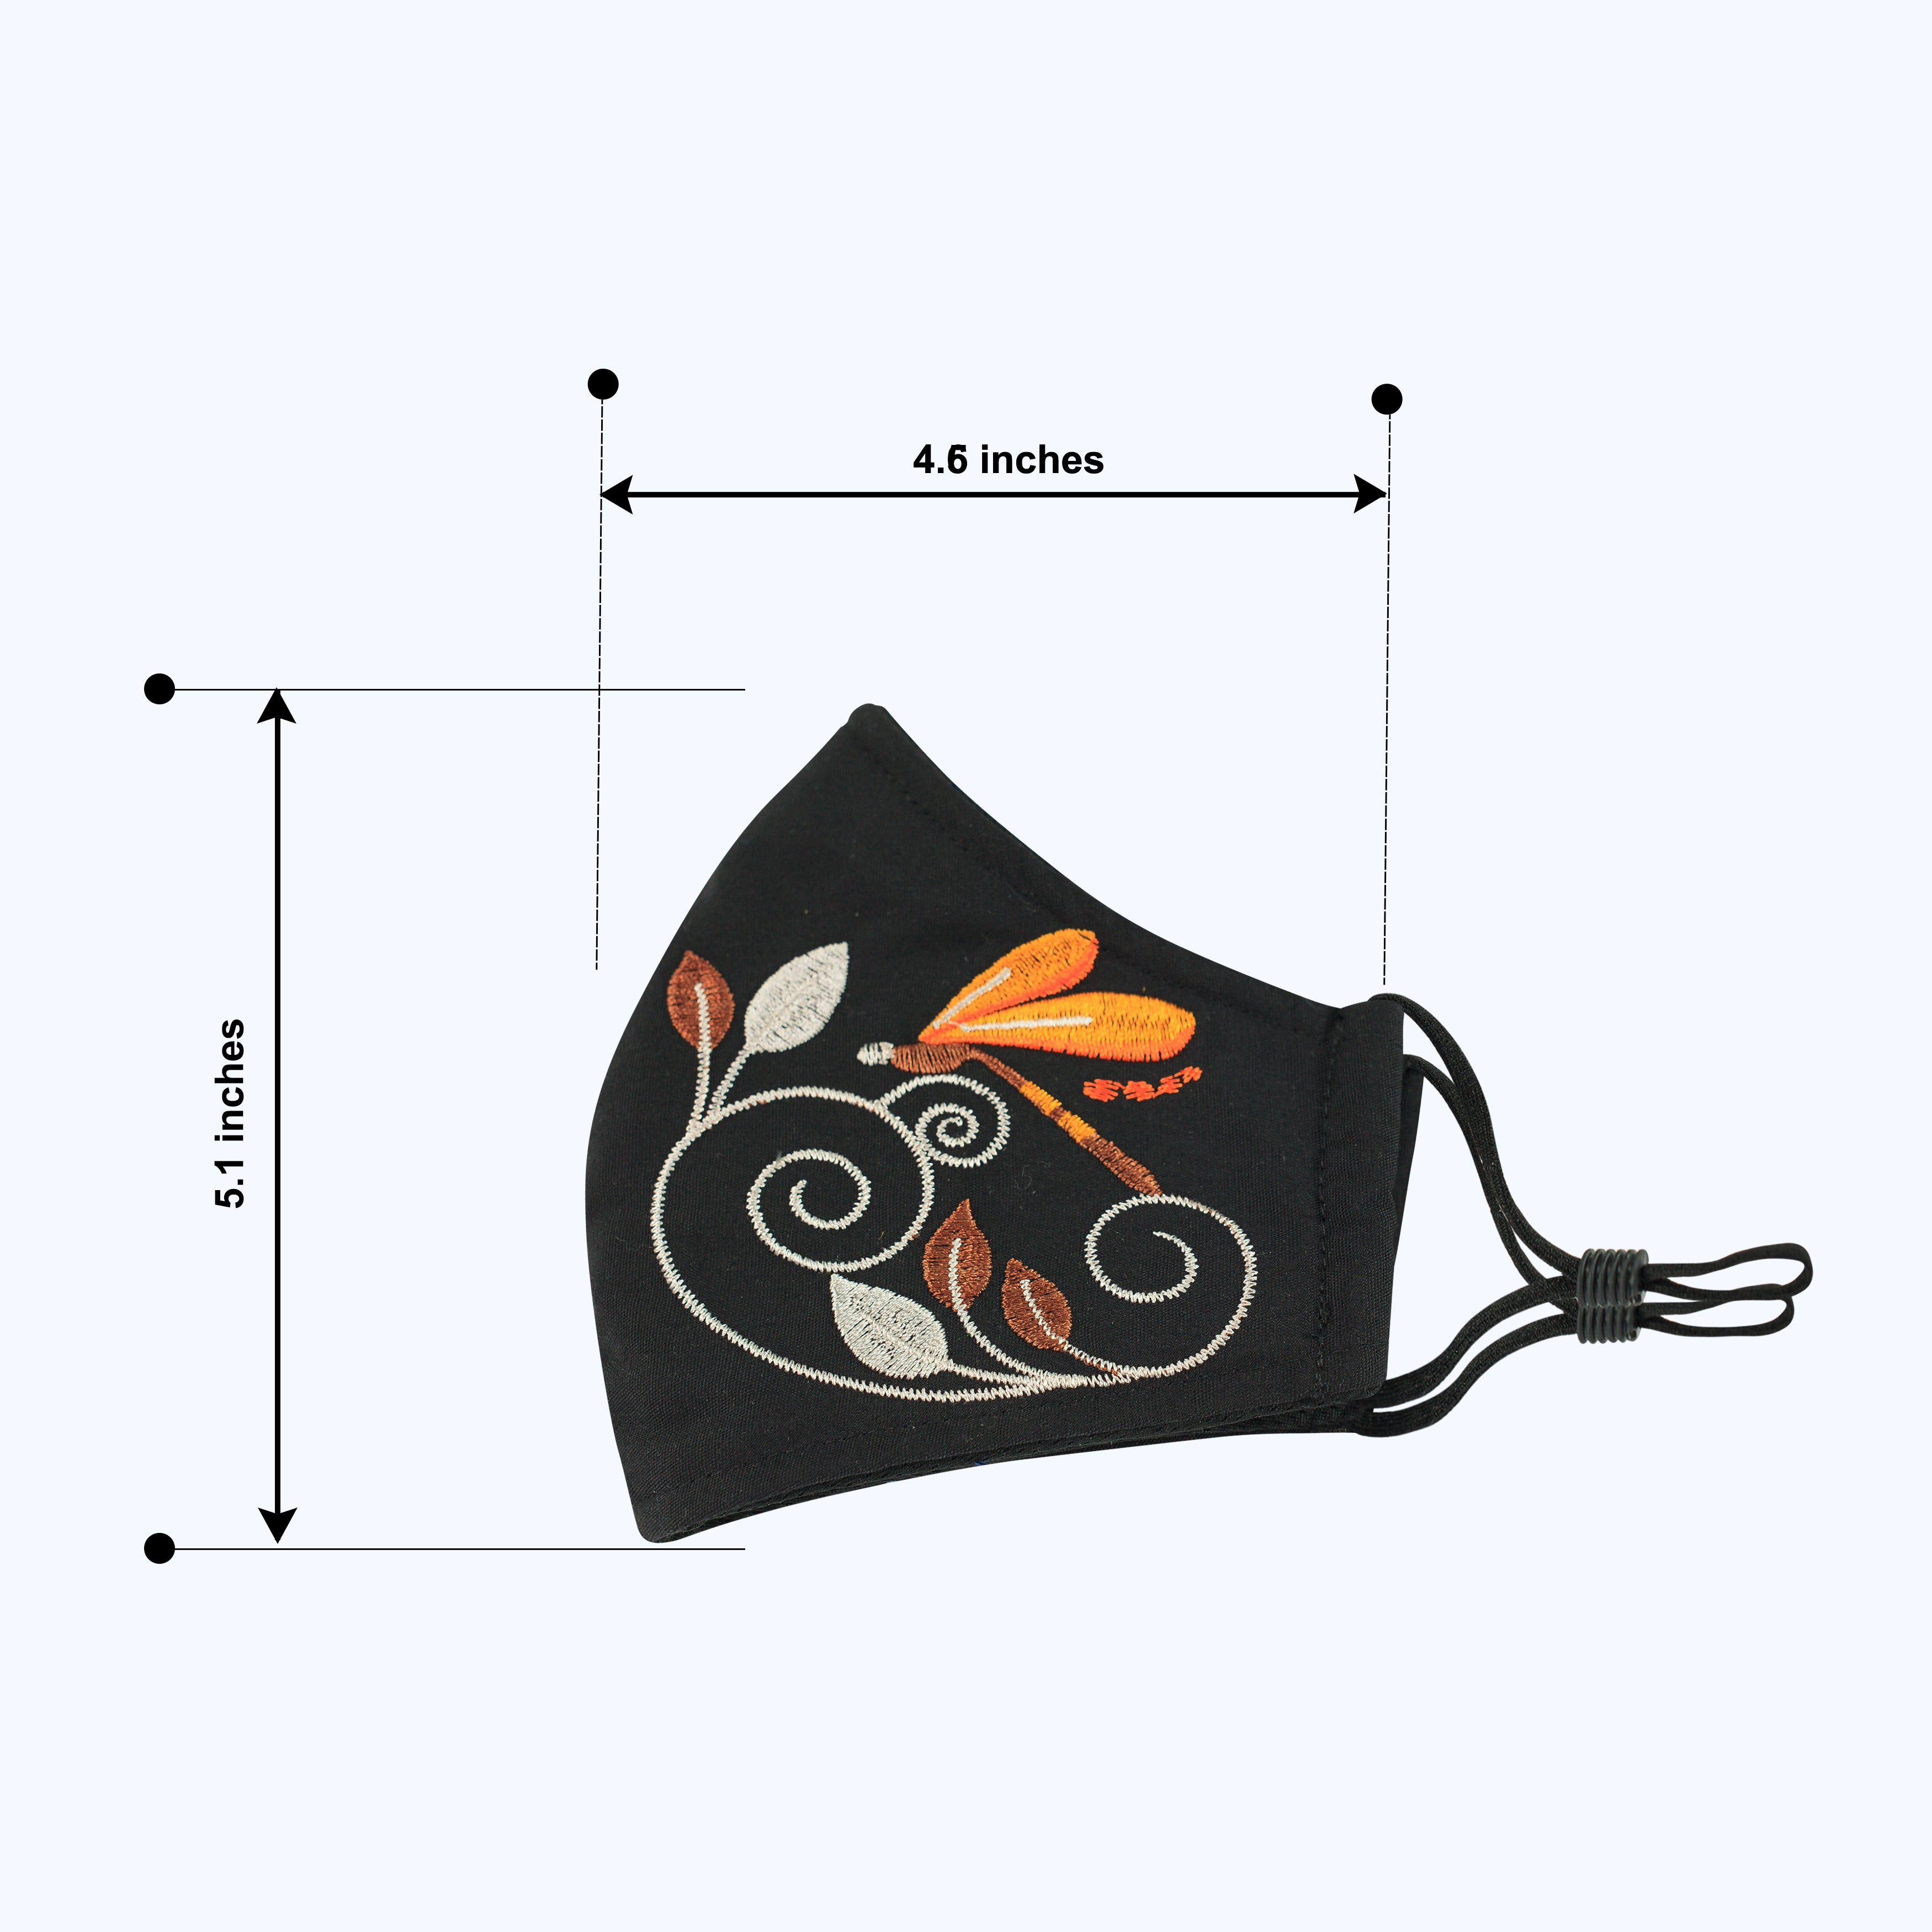 Embroidery Style 3 - Adults - Nose Wire - 3 layers Cloth Mask. Adjustable Straps.